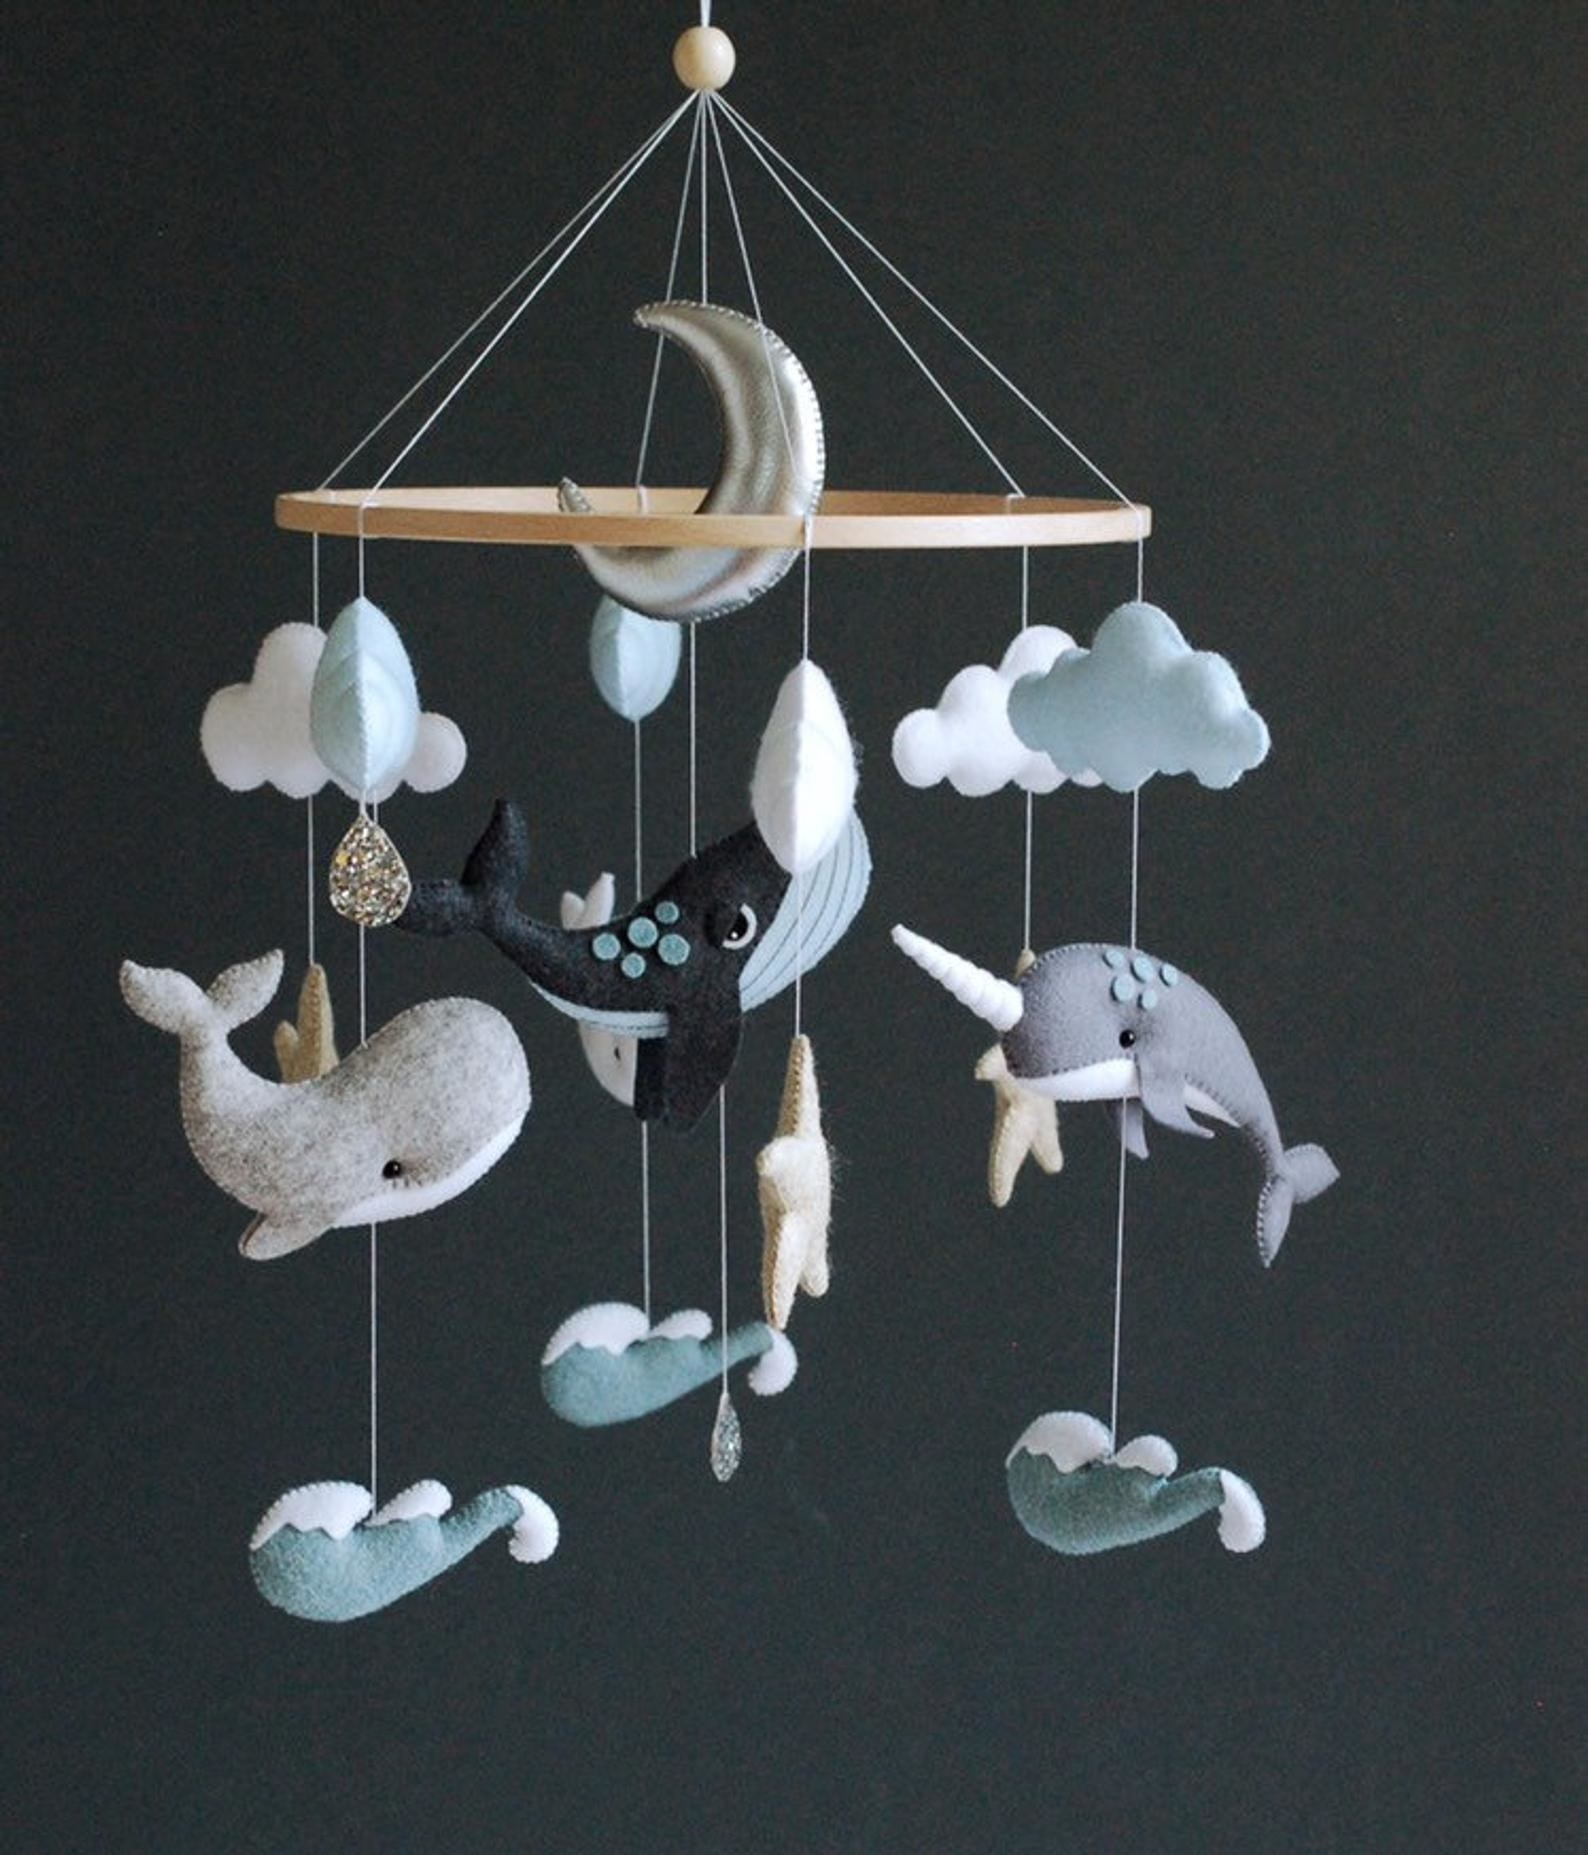 A mobile of various gray and blue whales and waves with a silver moon at the center